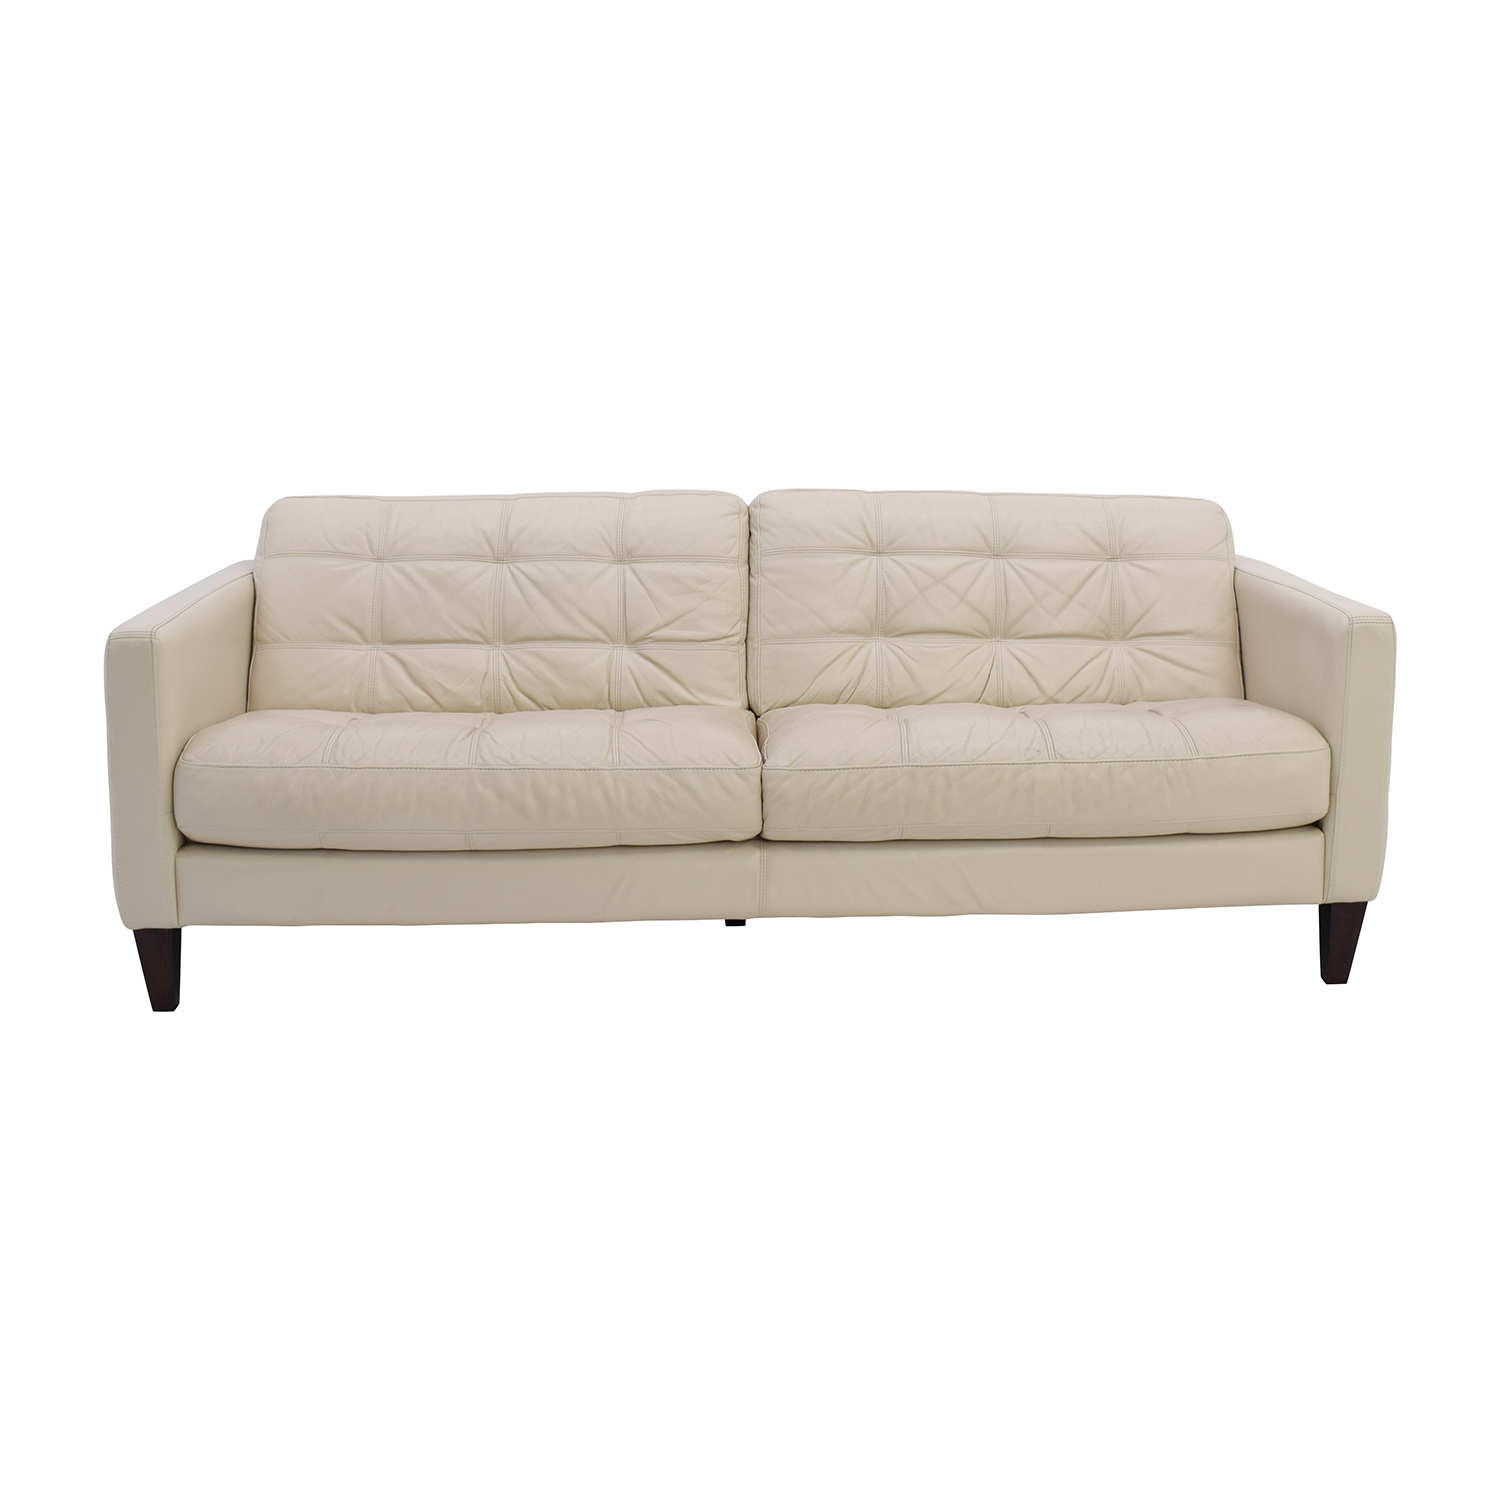 85 Off Macy S Milan Pearl Leather Sofa Sofas Rh Furnishare Com Sectional Macys Zane